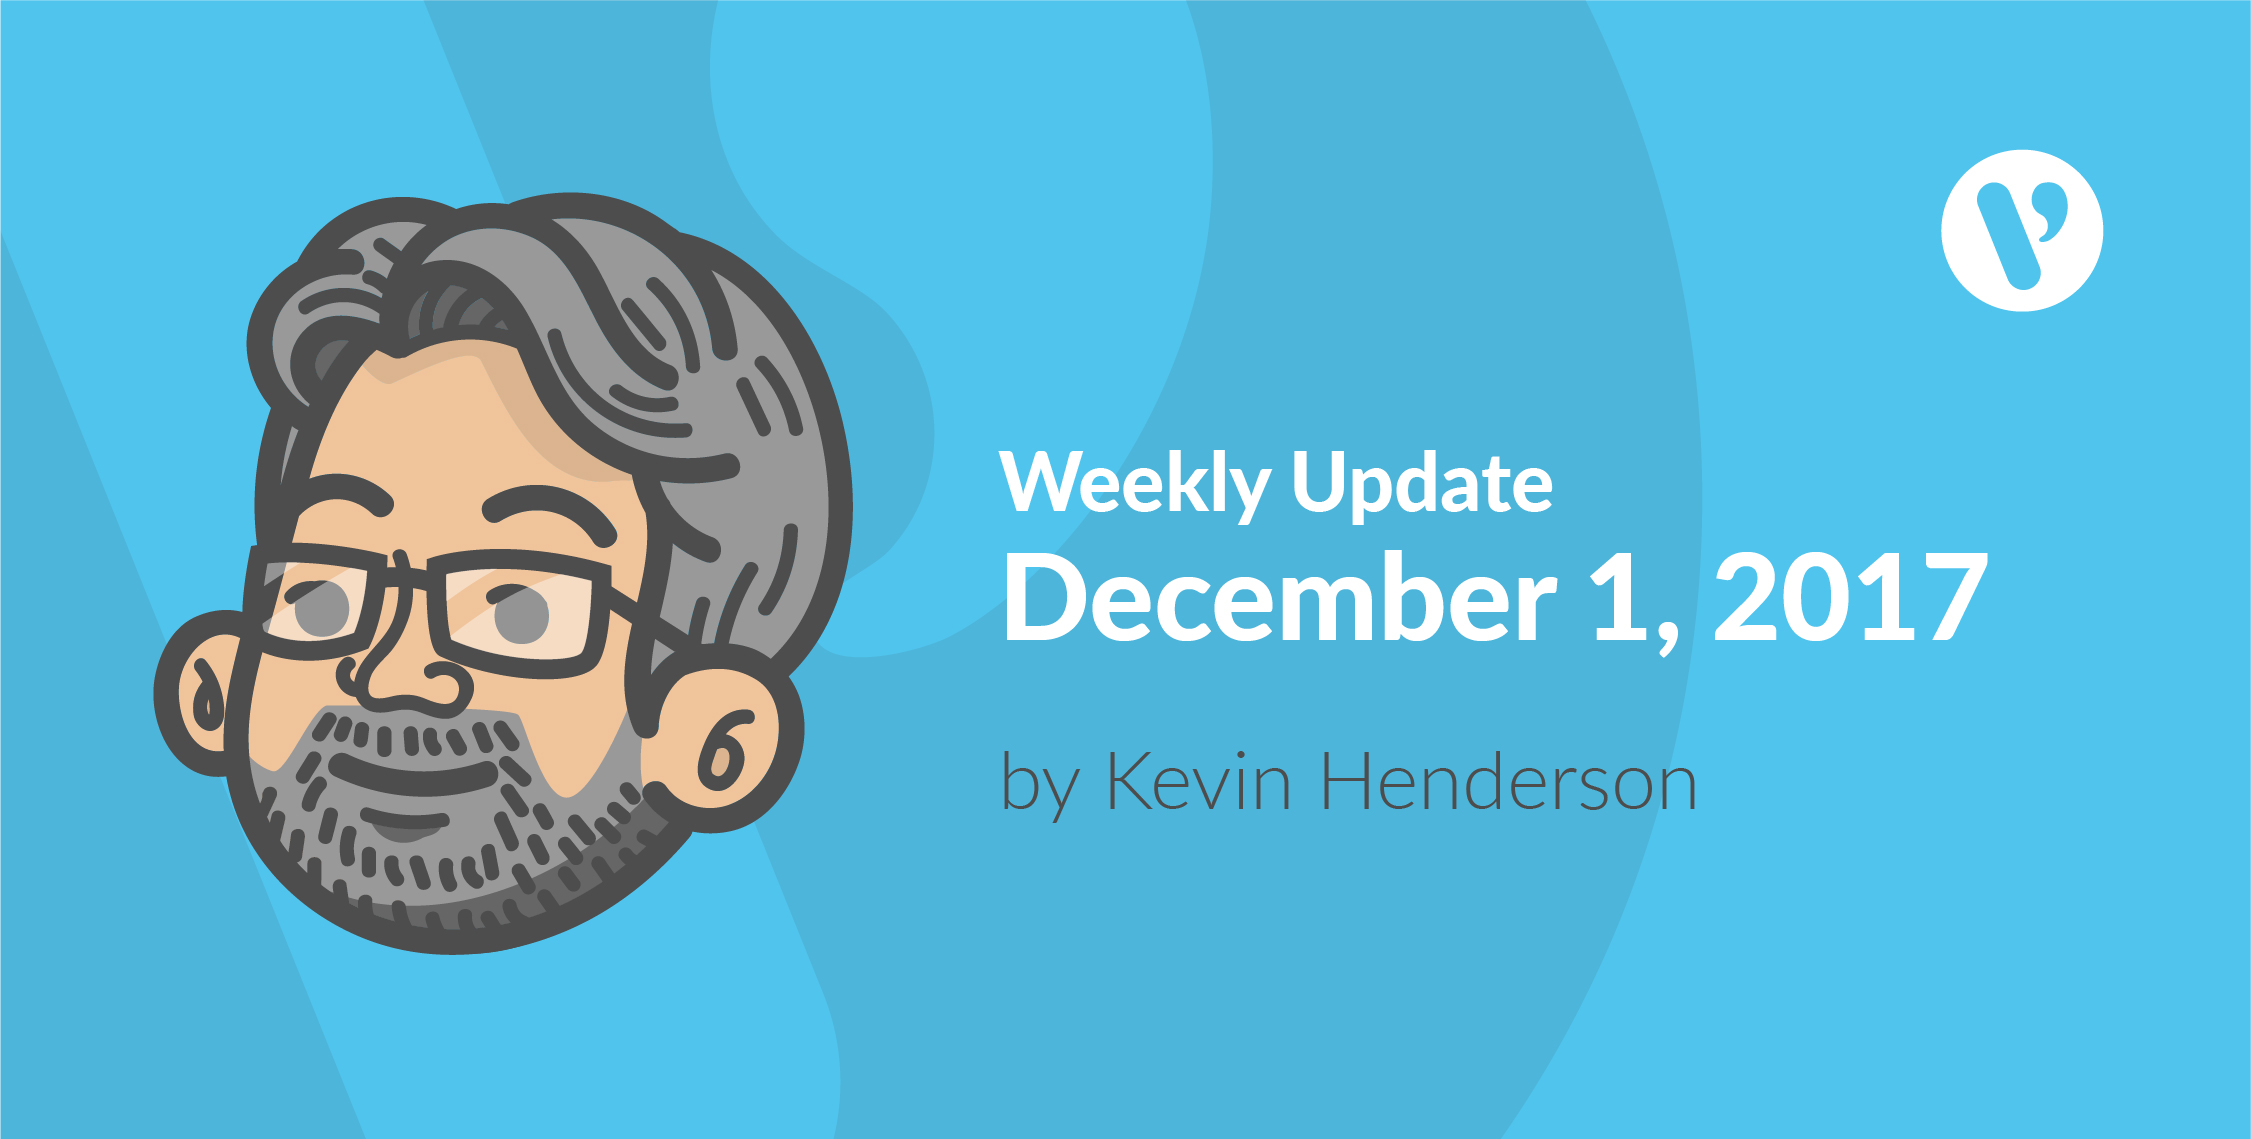 Weekly Update Dec 1 17